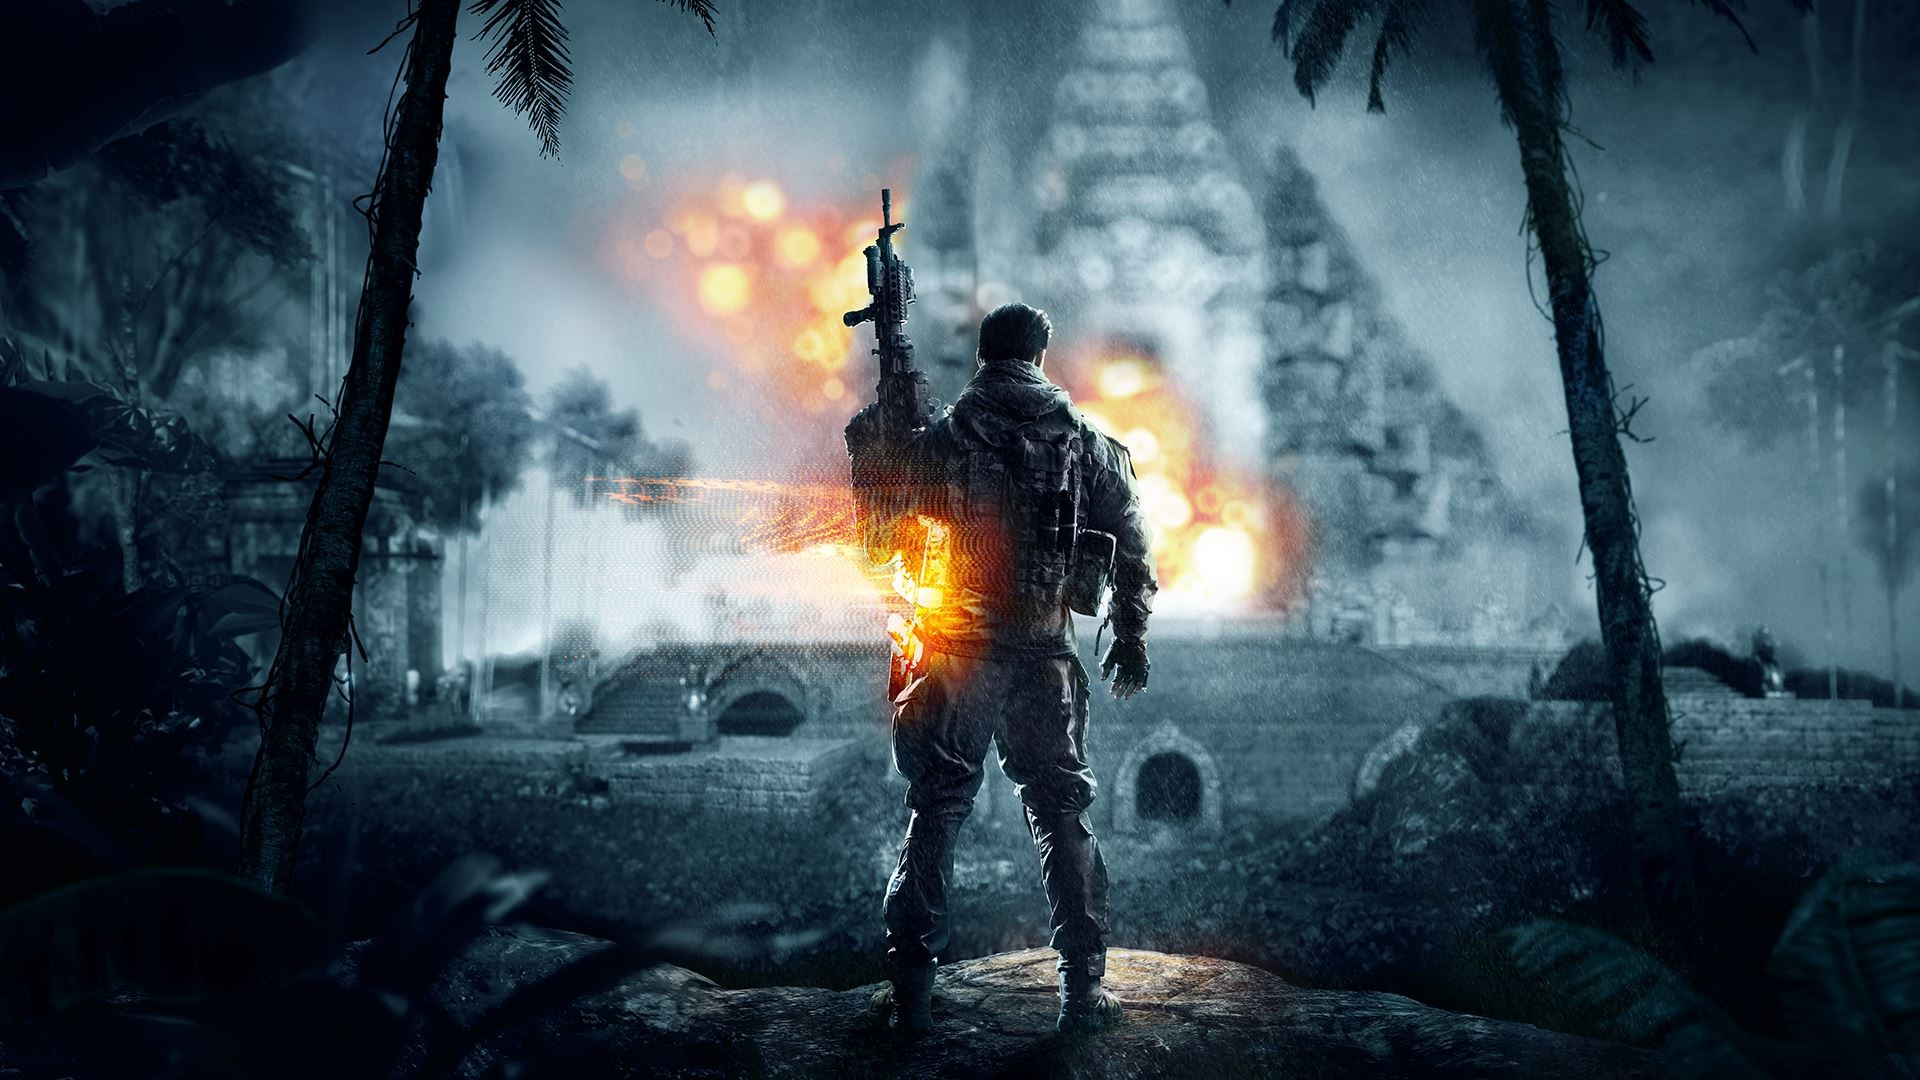 battlefield 4 game mission, hd games, 4k wallpapers, images